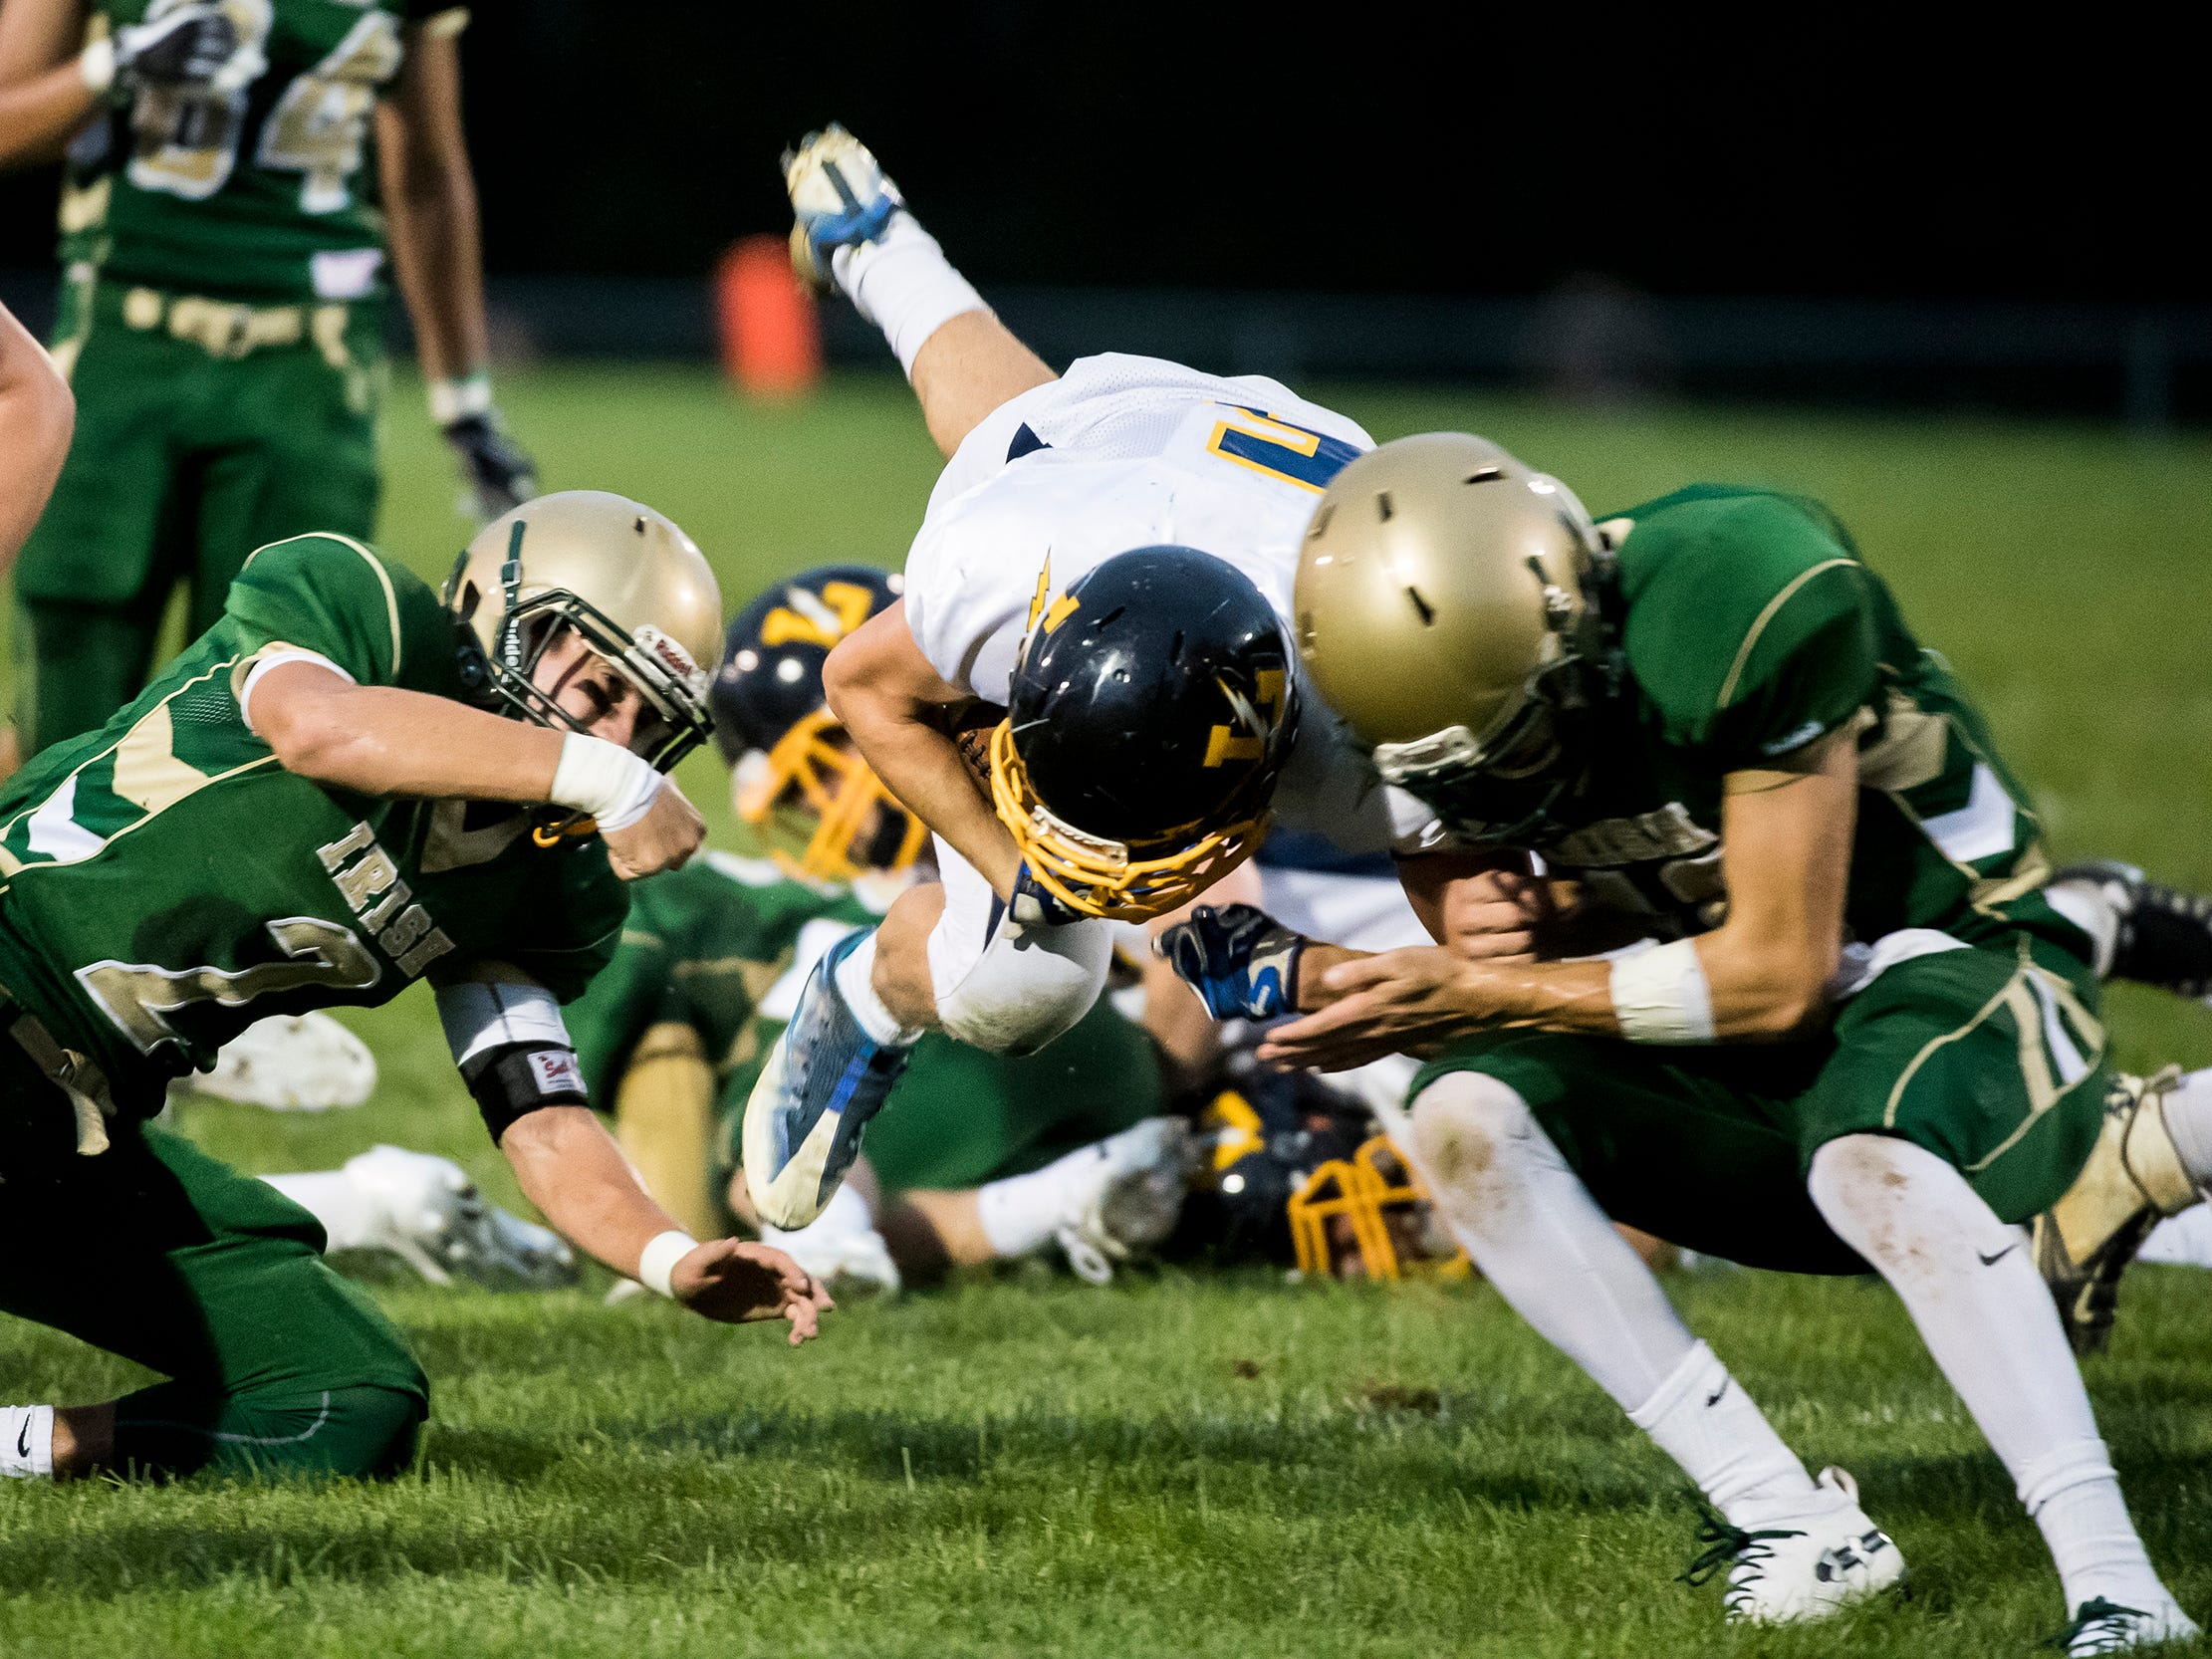 Littlestown's Corbin Brown goes airborne while running the ball up the middle against York Catholic on Friday, September 14, 2018. The Bolts fell 22-19.